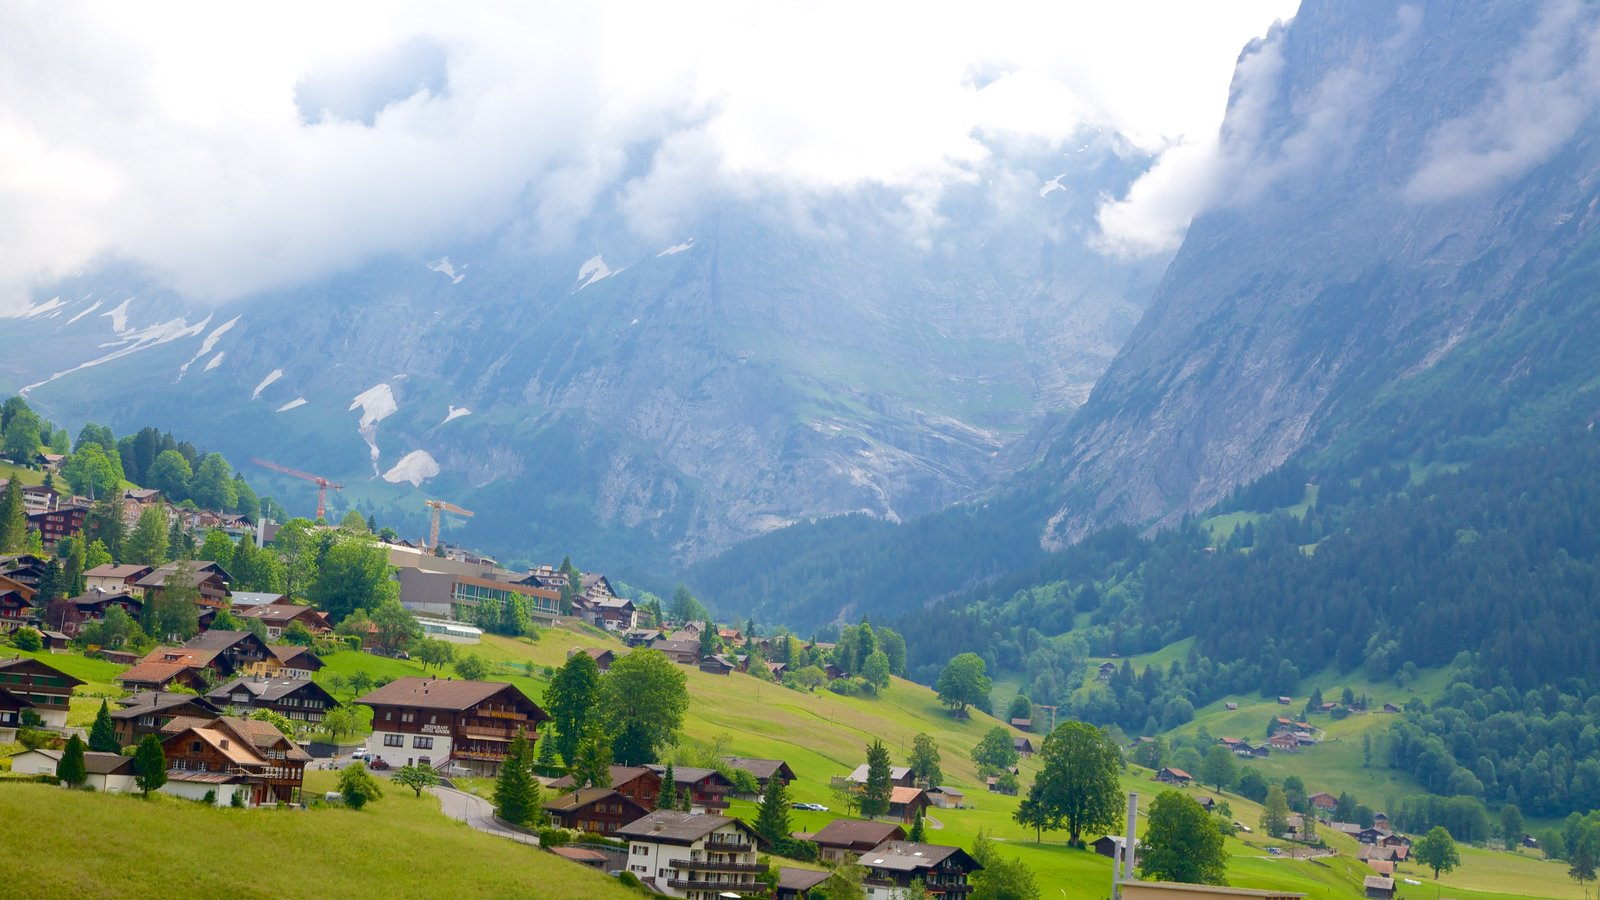 Bernese Alps pictures: View photos and images of Bernese Alps Bernese Alps, Switzerland